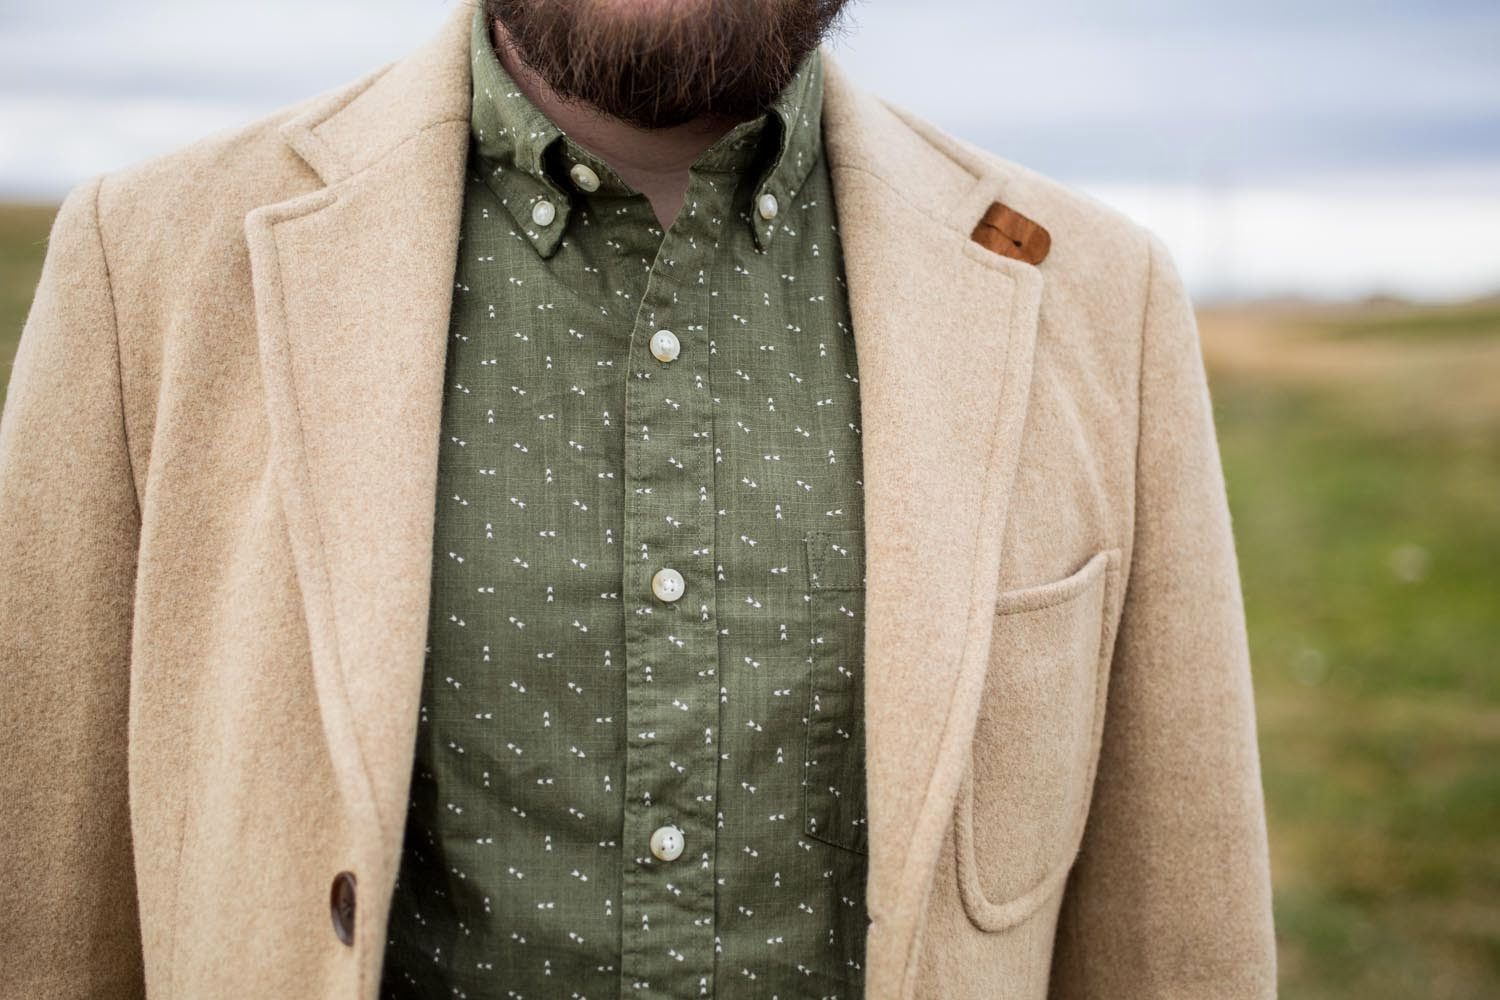 GANT Camel Hair Coat and a JCREW patterned button up